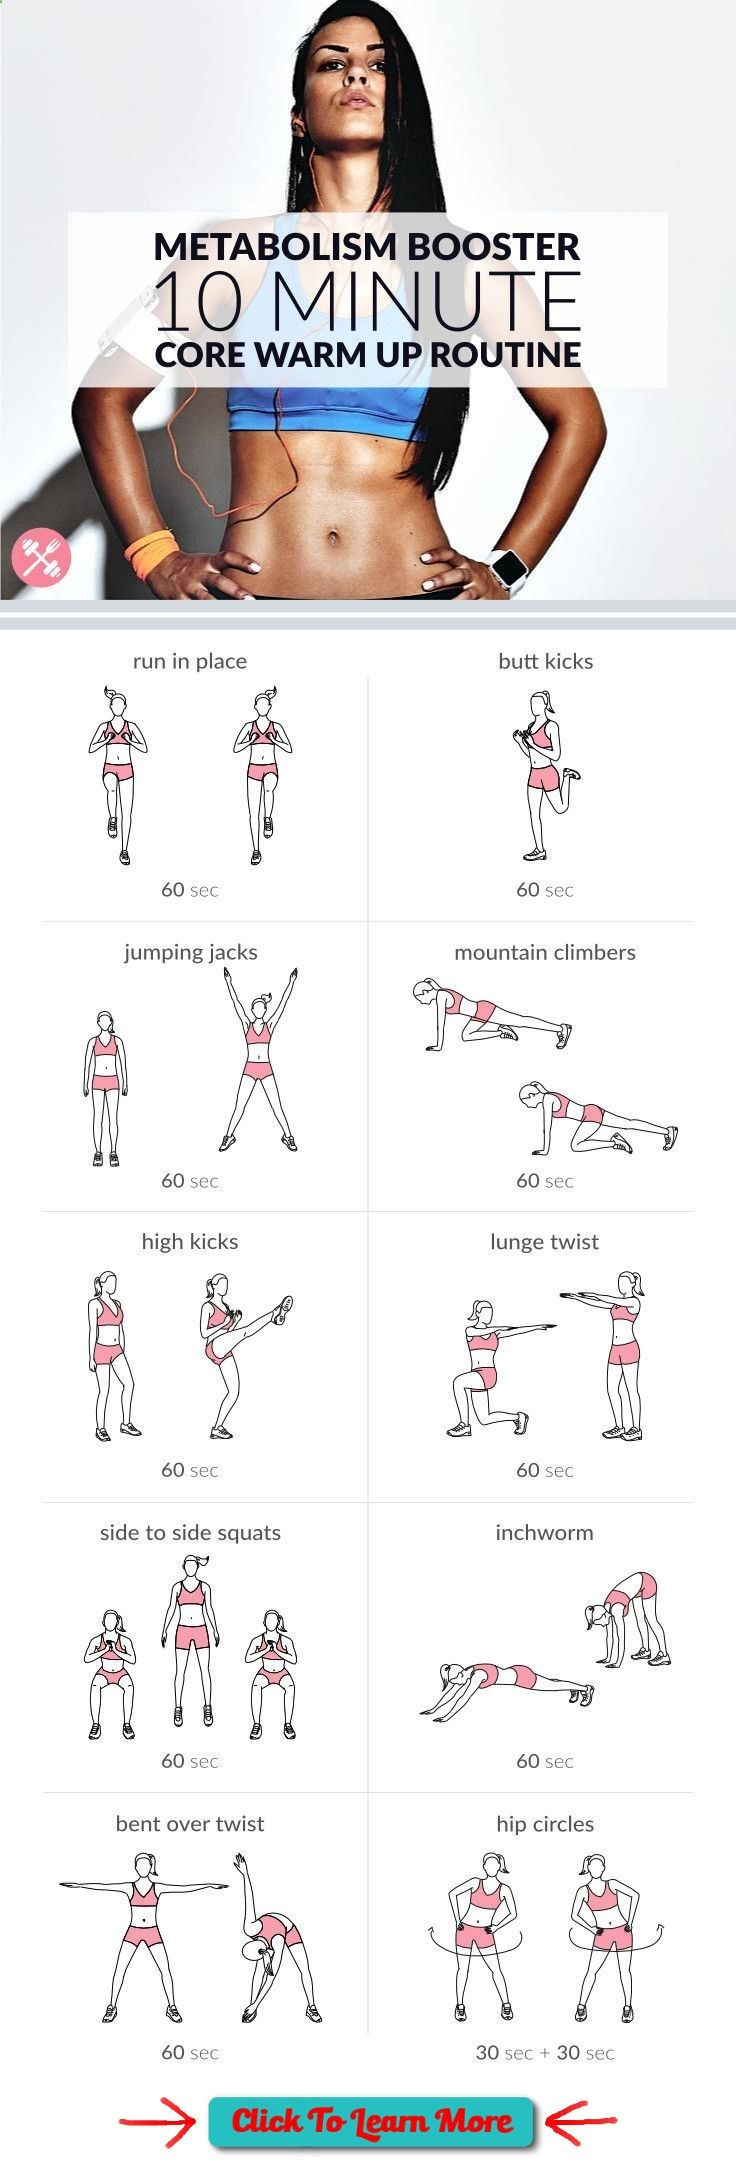 #FastestWayToLoseWeight by EATING, Click to learn more, Warm up your abs and lower back with this bodyweight at home core warm up routine. Get your heart pumping and prepare your core for a strengthening workout. www.spotebi.com/... , #HealthyRecipes, #FitnessRecipes, #BurnFatRecipes, #WeightLossRecipes, #WeightLossDiets